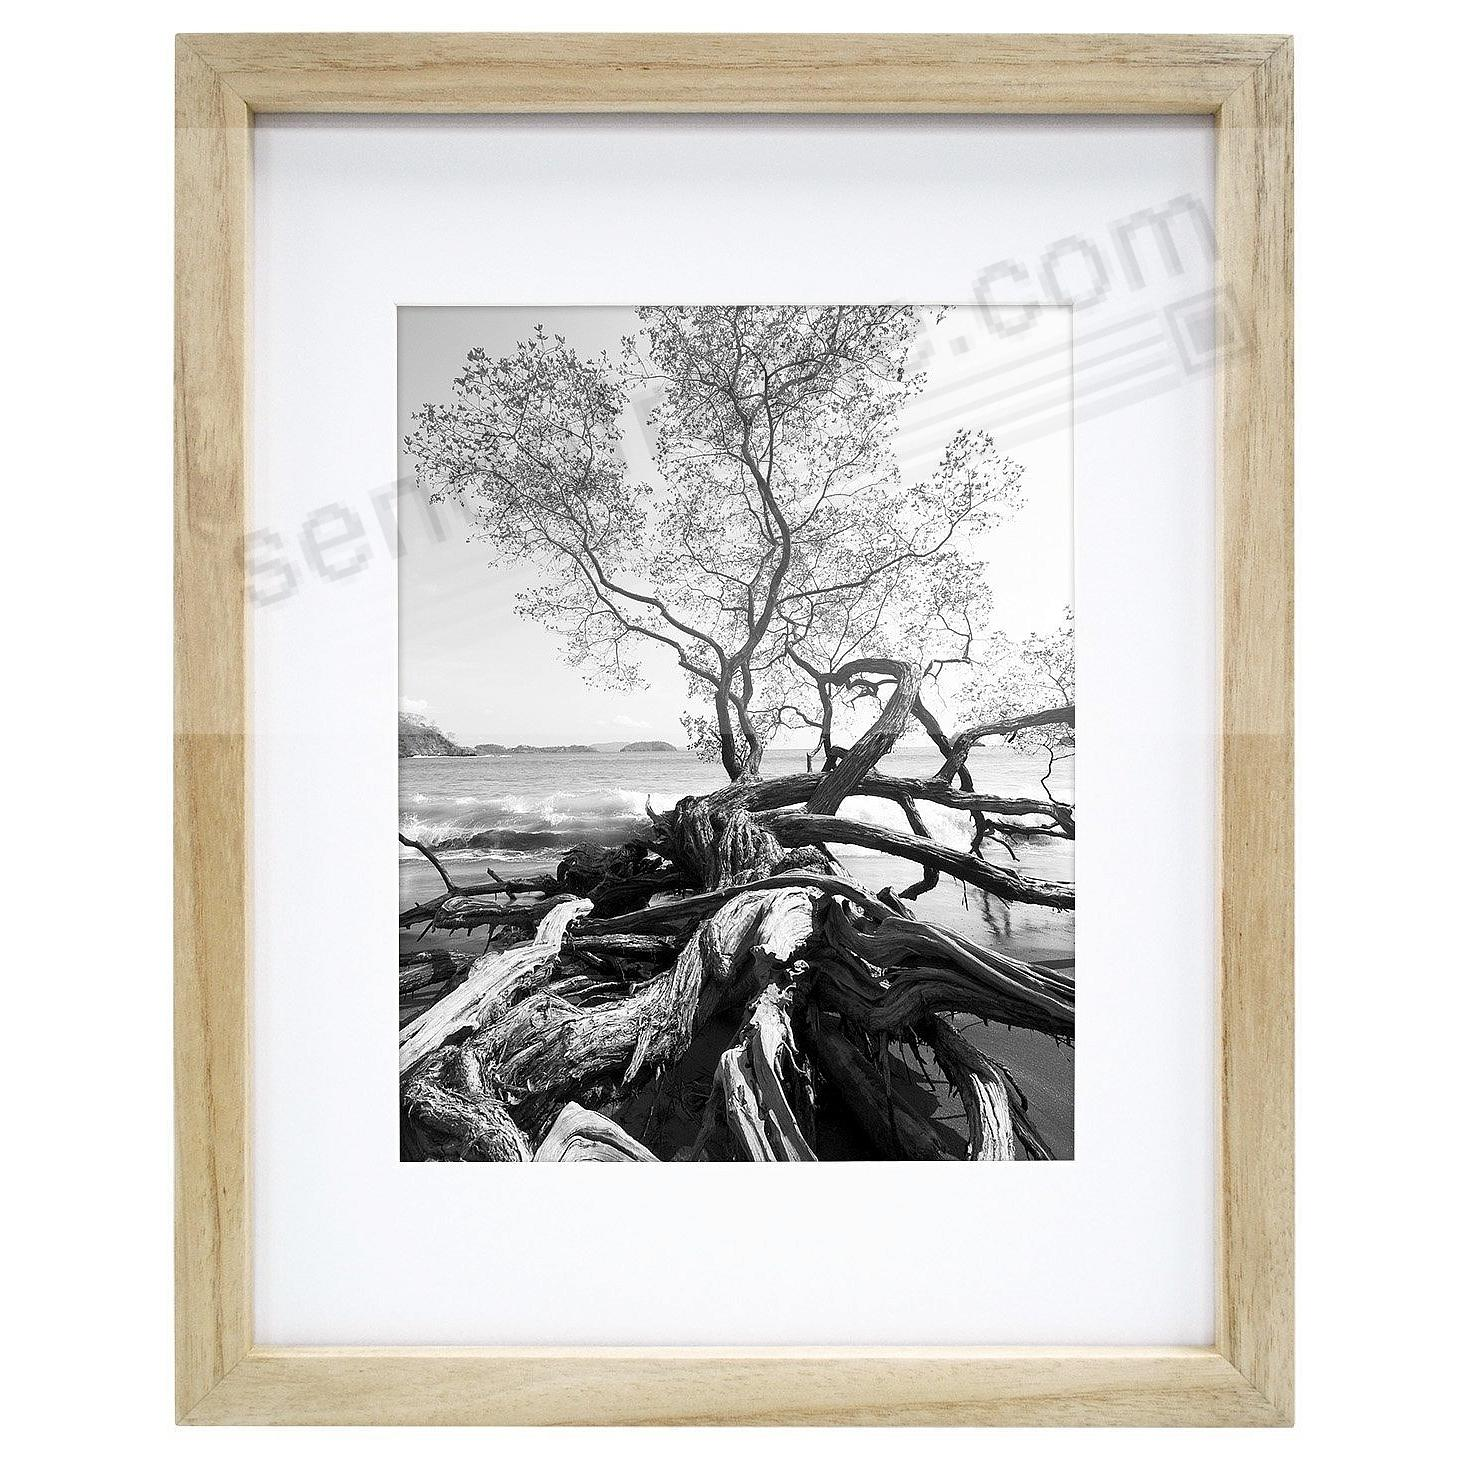 art shadow box 8x10 5x7 natural wood frame by mcs picture frames